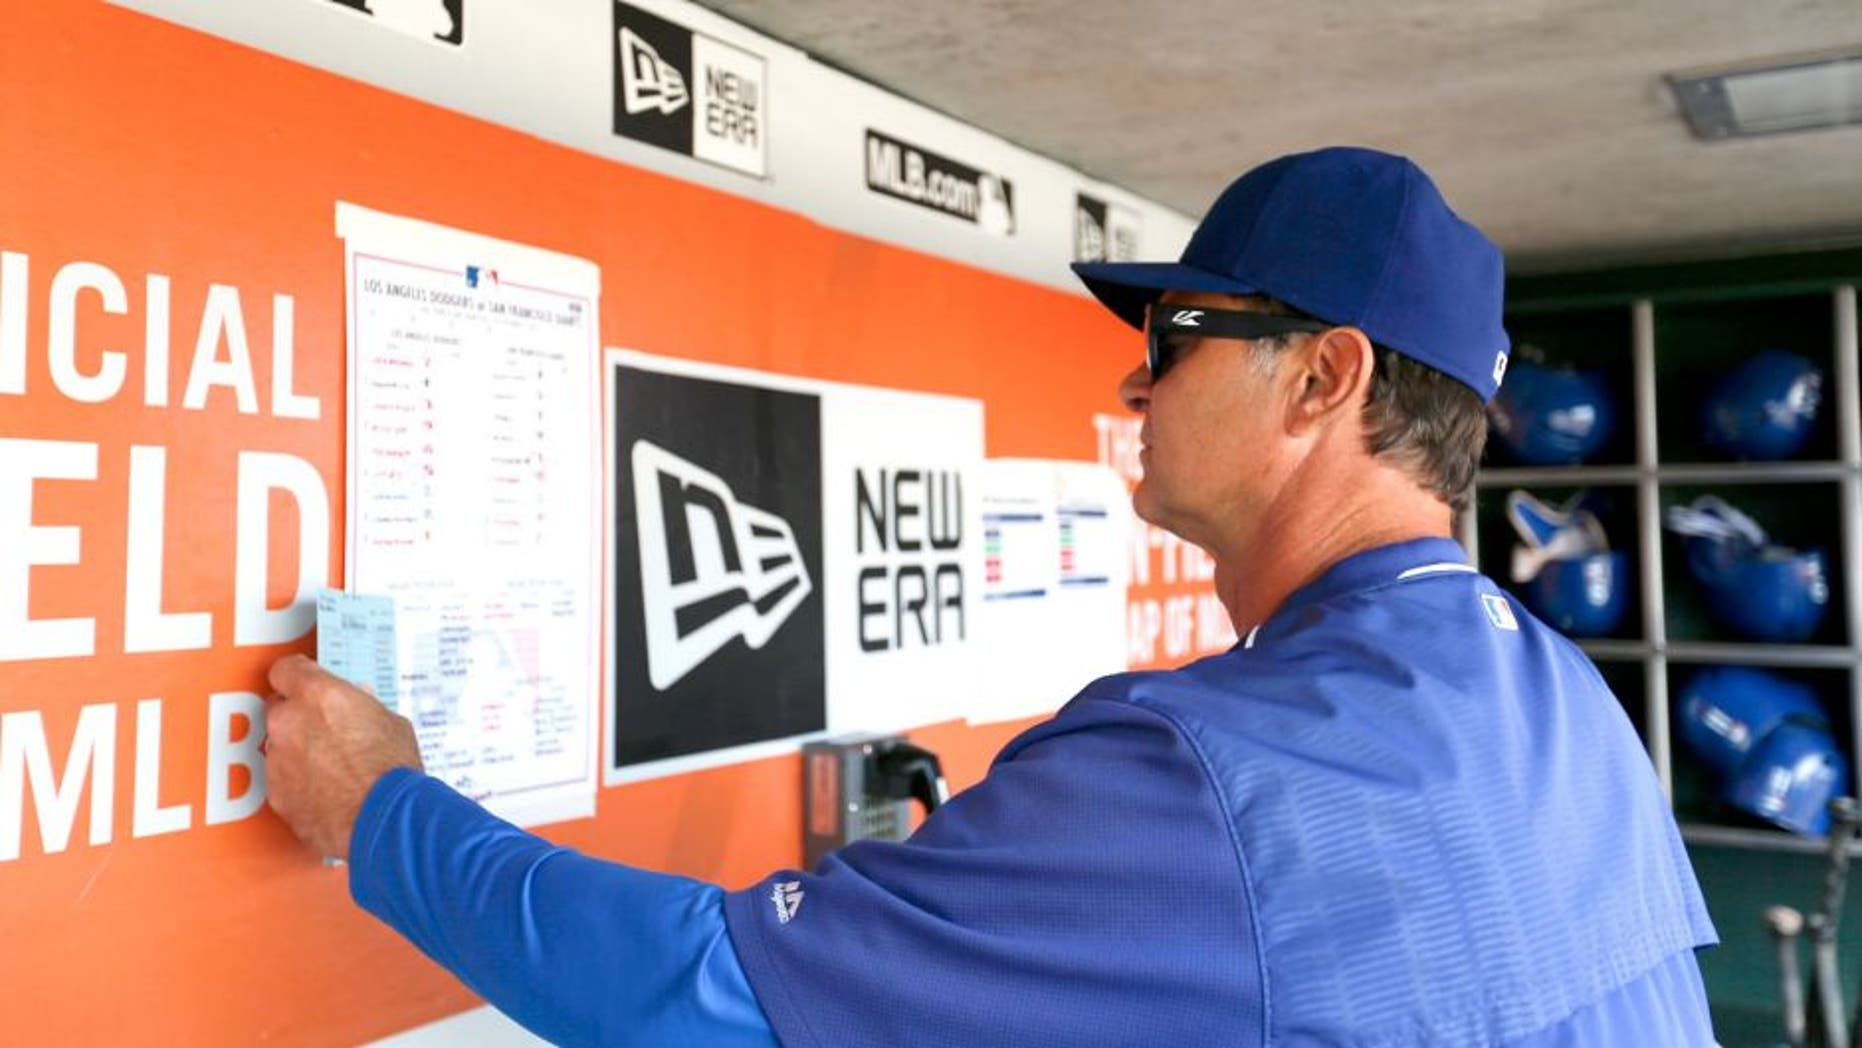 SAN FRANCISCO, CA - OCTOBER 1: Manager Don Mattingly #8 of the Los Angeles Dodgers checks the lineup in the dugout prior to the game against theSan Francisco Giants at AT&T Park on October 1, 2015 in San Francisco, California. The Dodgers defeated the Giants 3-2. (Photo by Michael Zagaris/Getty Images)